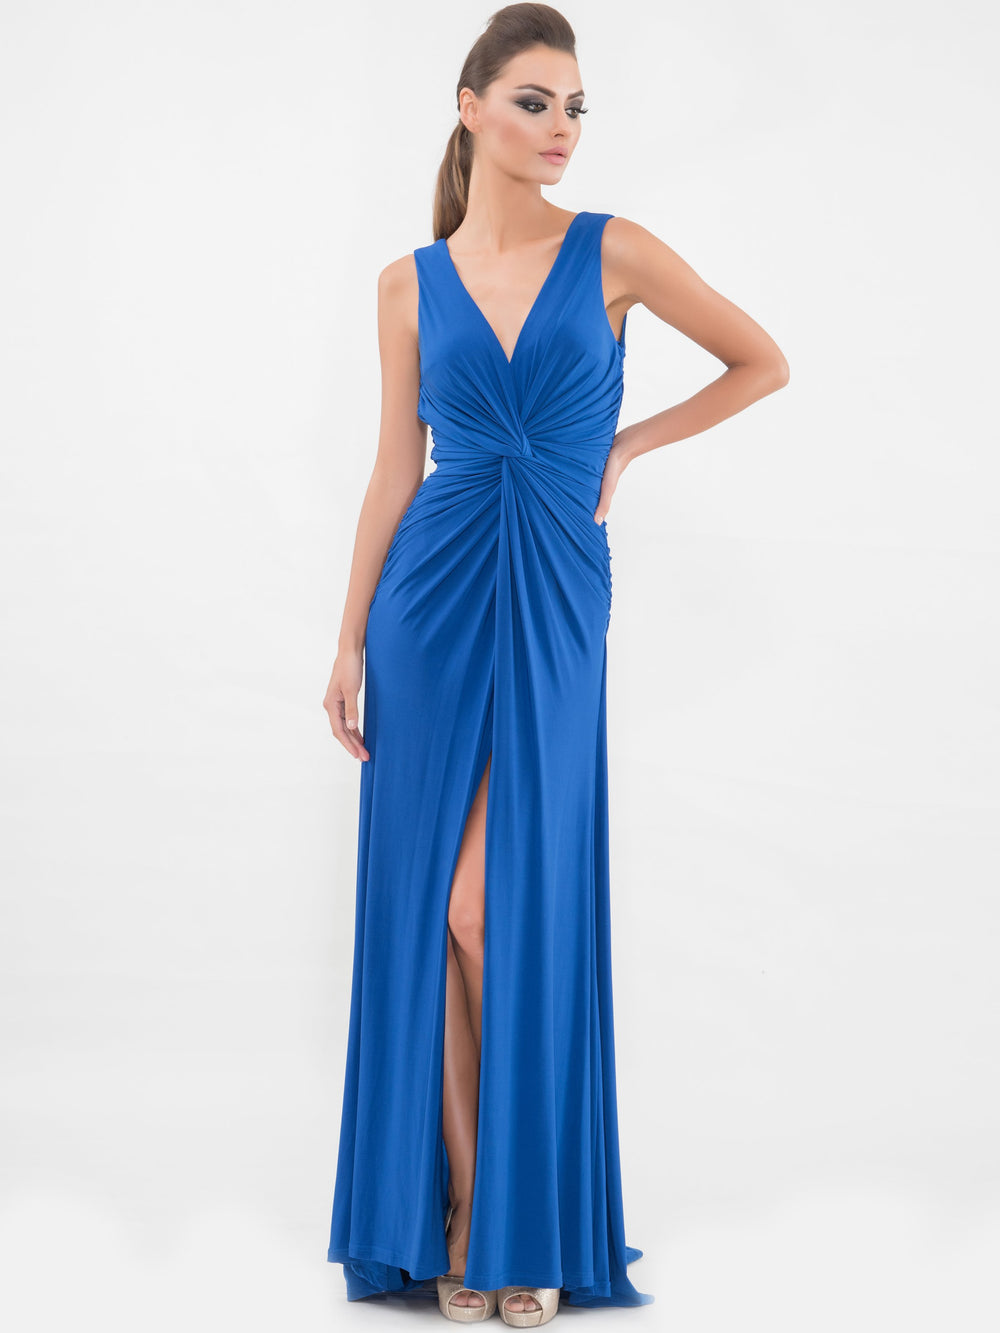 Blue Twist Front Sleeveless Gown, VITTORIA ROMANO - elilhaam.com